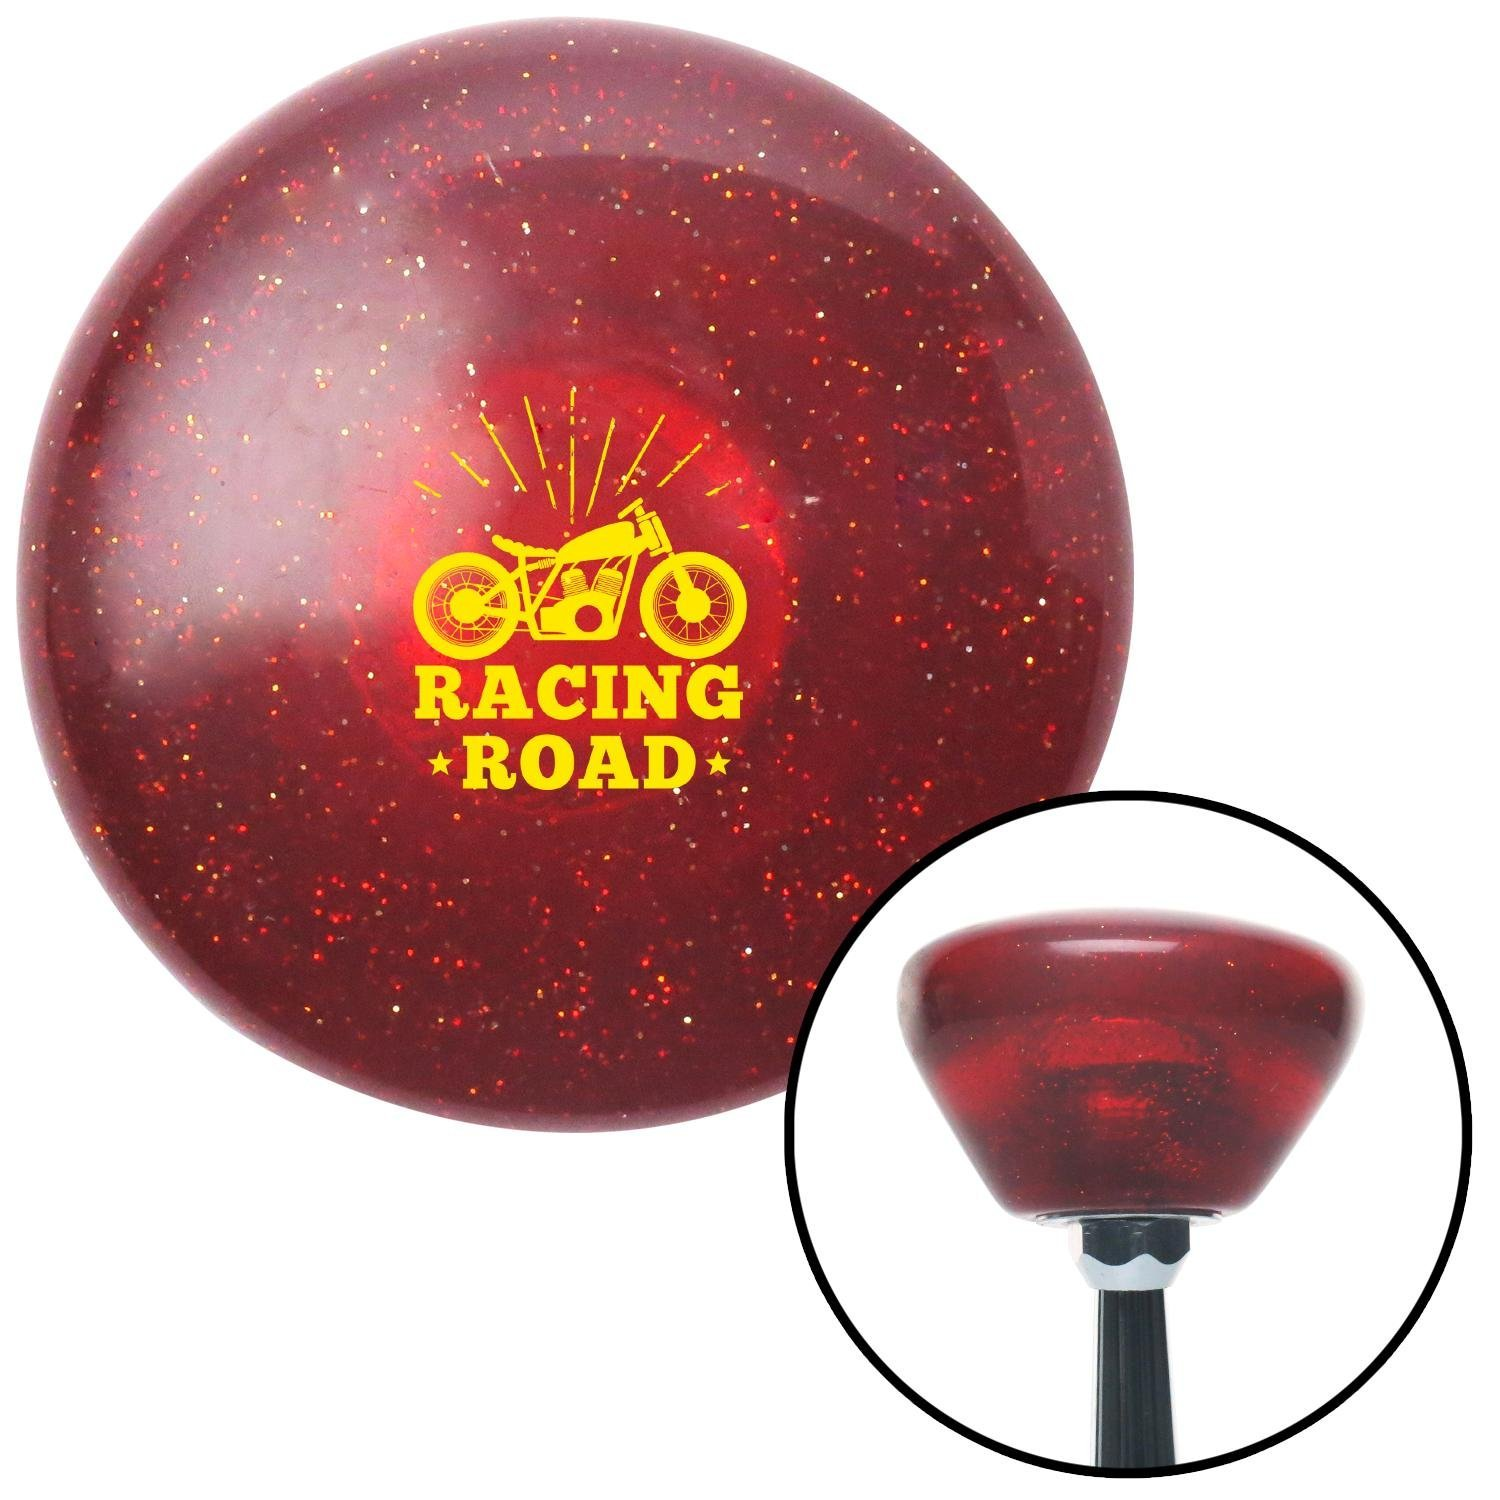 American Shifter 290794 Shift Knob Yellow Racing Road Red Retro Metal Flake with M16 x 1.5 Insert